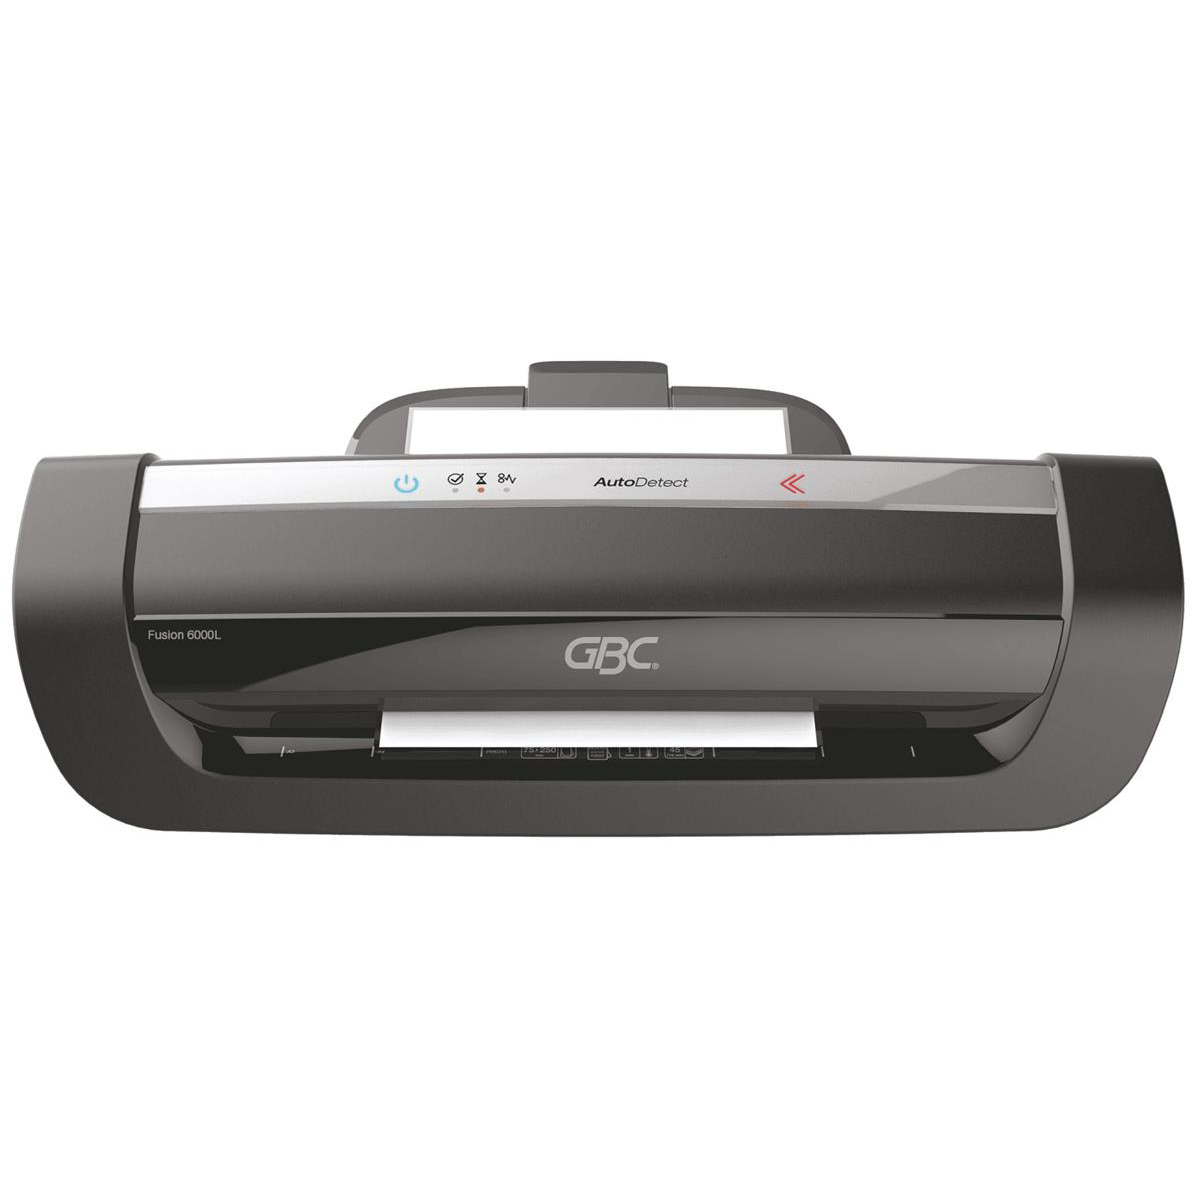 GBC Fusion 6000L A3 Laminator High Speed Up to 500 Micron Ref 4402134